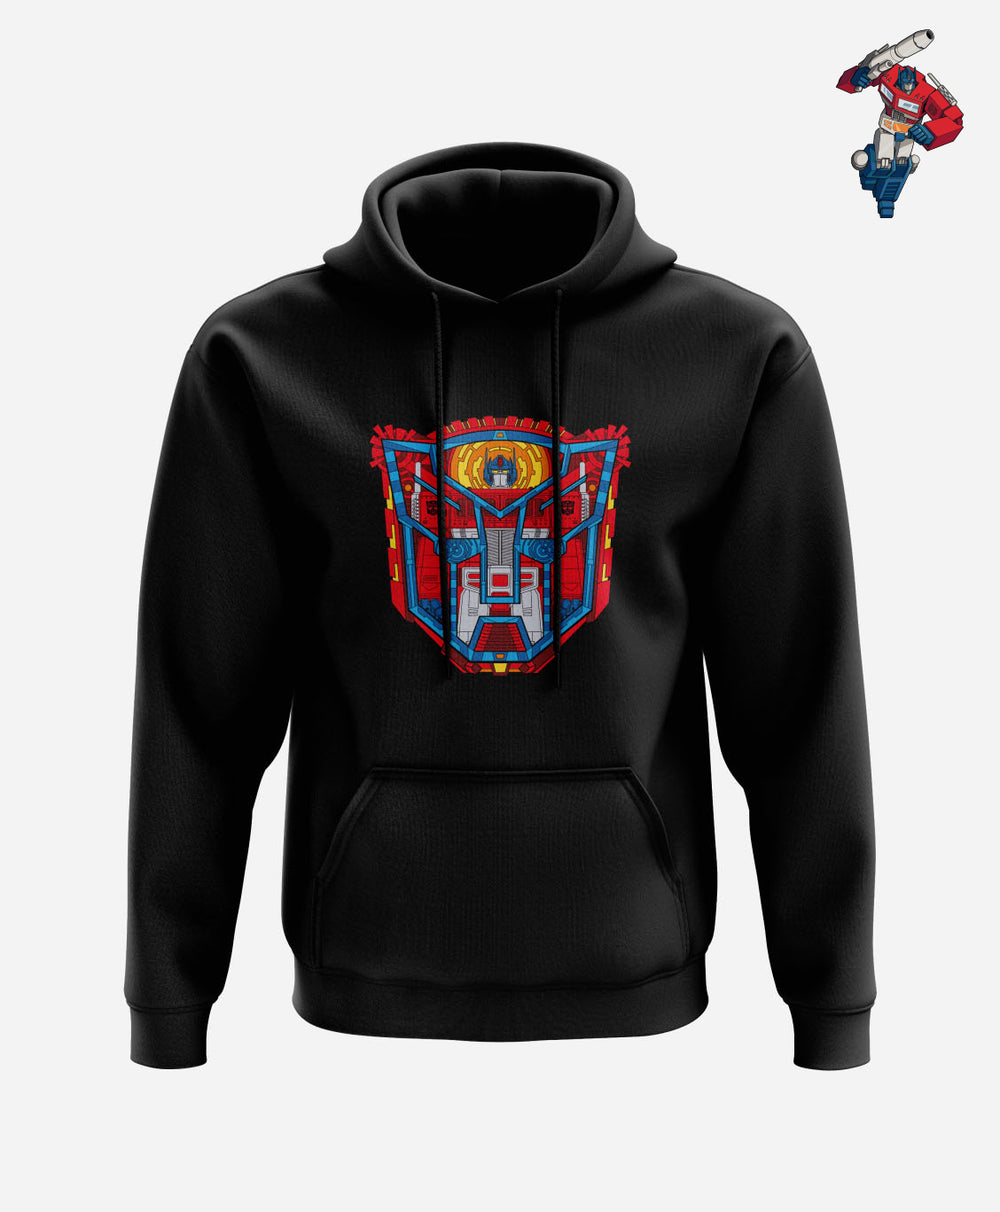 Transformers Optimus Prime Special Edition Hoodie